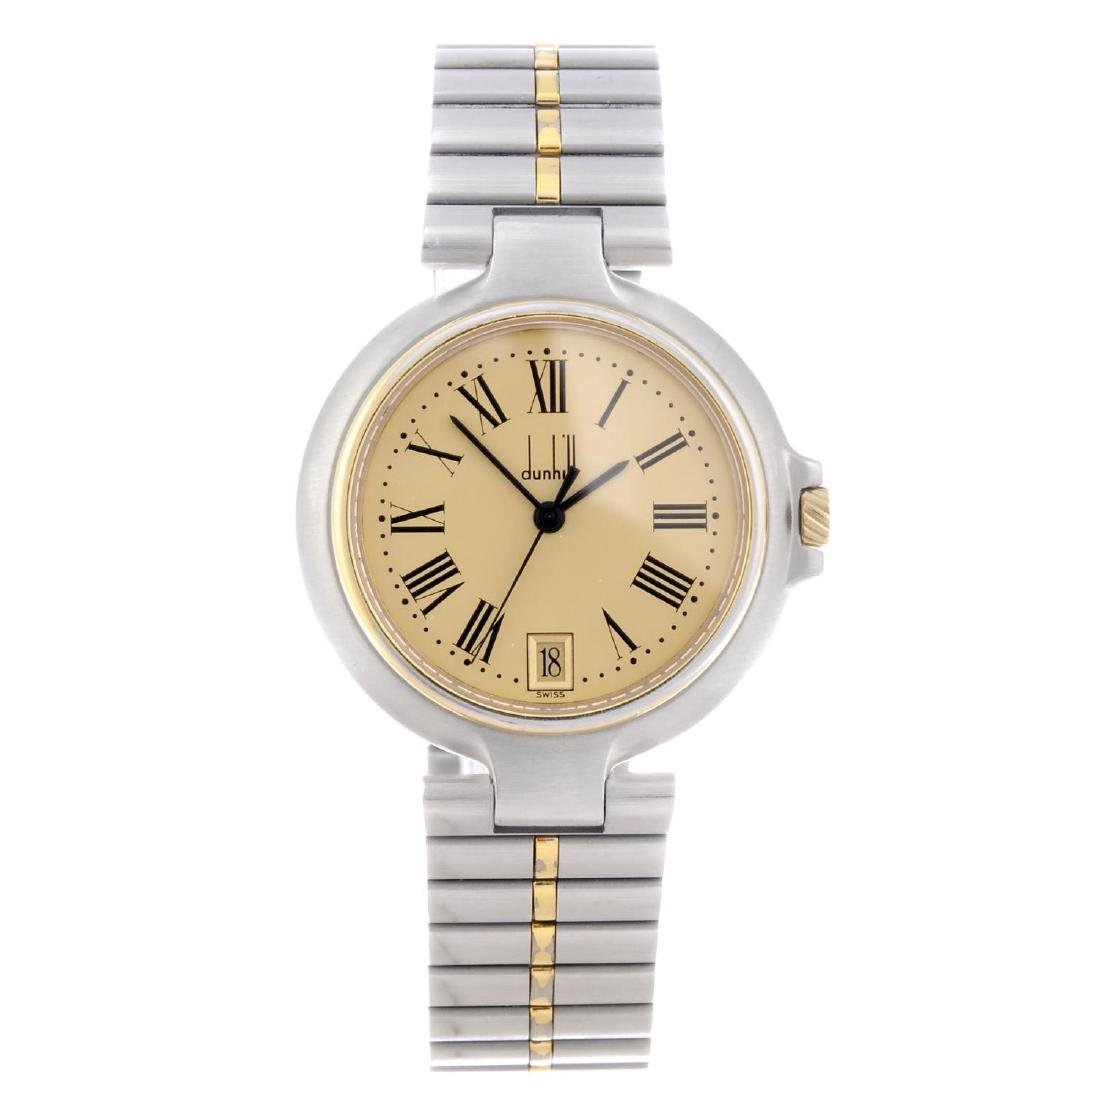 DUNHILL - a mid-size bracelet watch. Stainless steel